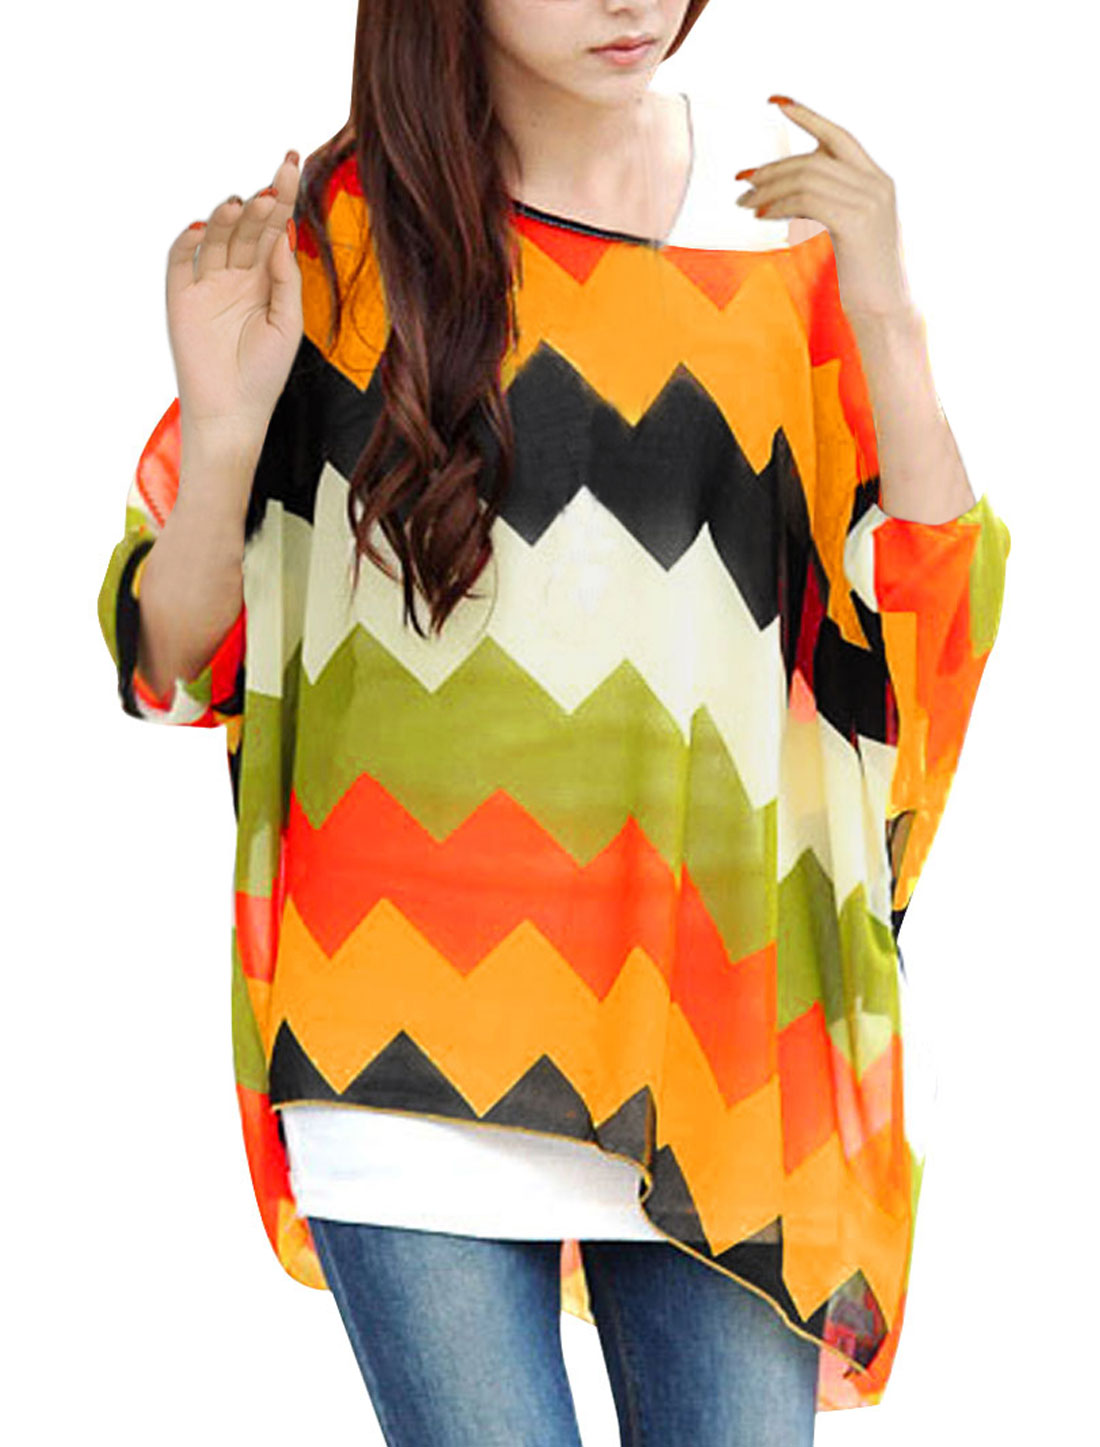 Ladies Batwing Sleeve Zigzag Pattern Loose Top Shirt Orange Black L